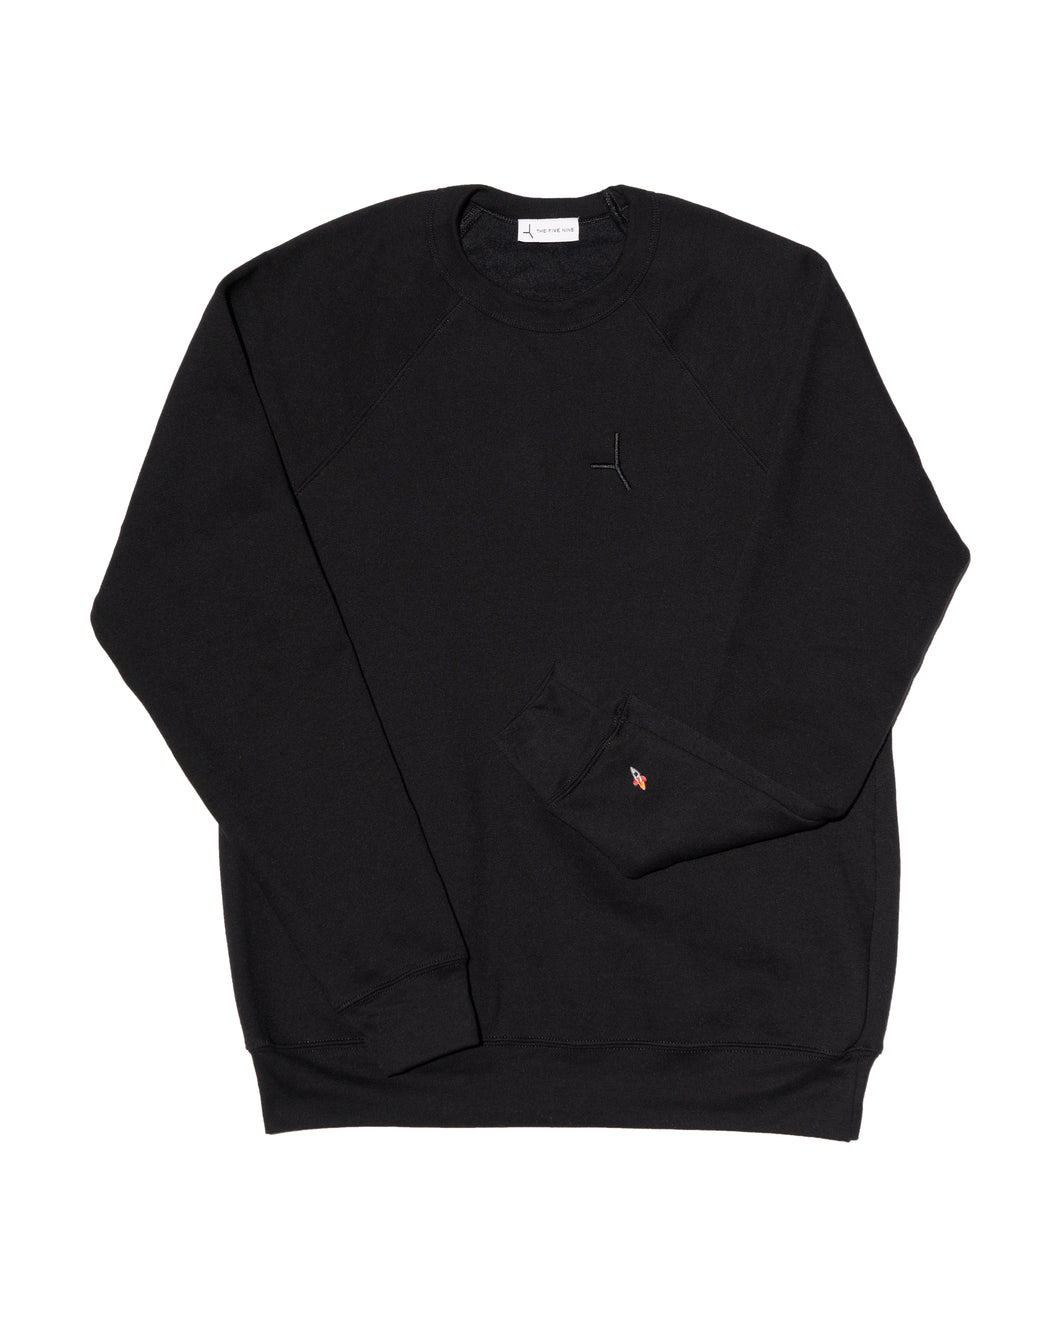 🚀 Sweatshirt - Straight black